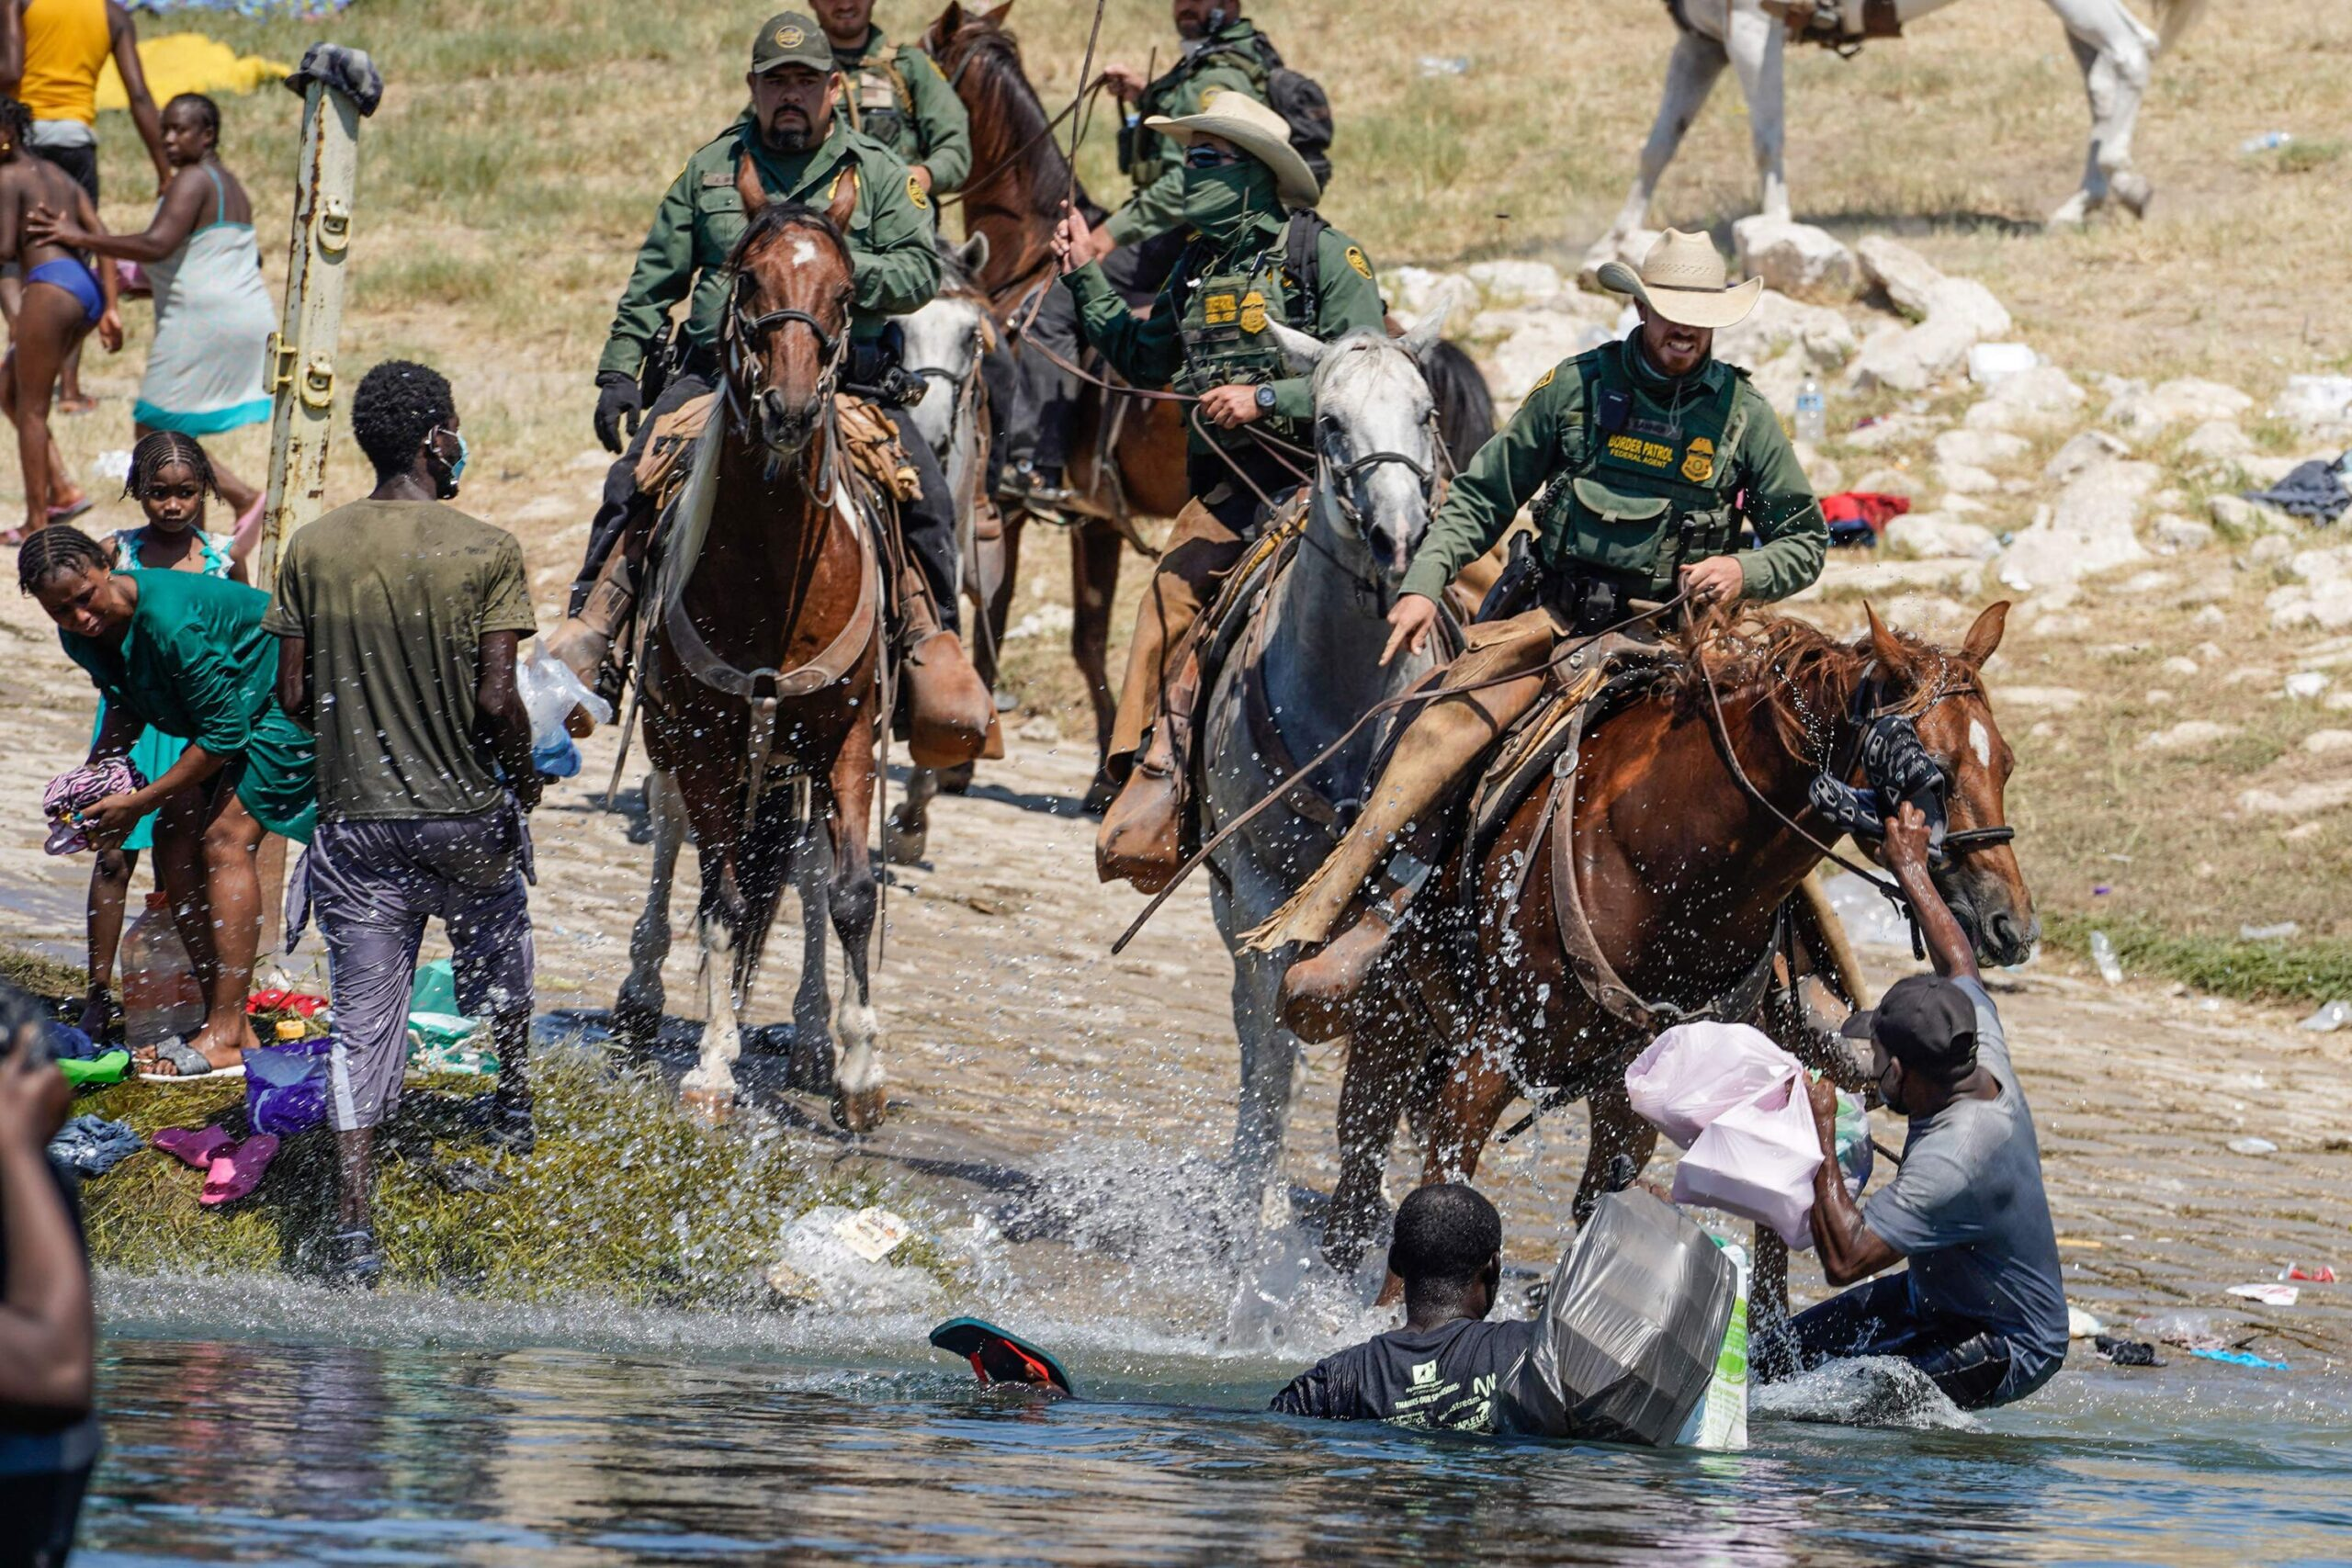 <i>Paul Ratje/AFP/Getty Images</i><br/>US Border Patrol agents on horseback try to stop Haitian migrants on Sunday from entering an encampment on the banks of the Rio Grande near the Acuna Del Rio International Bridge in Del Rio